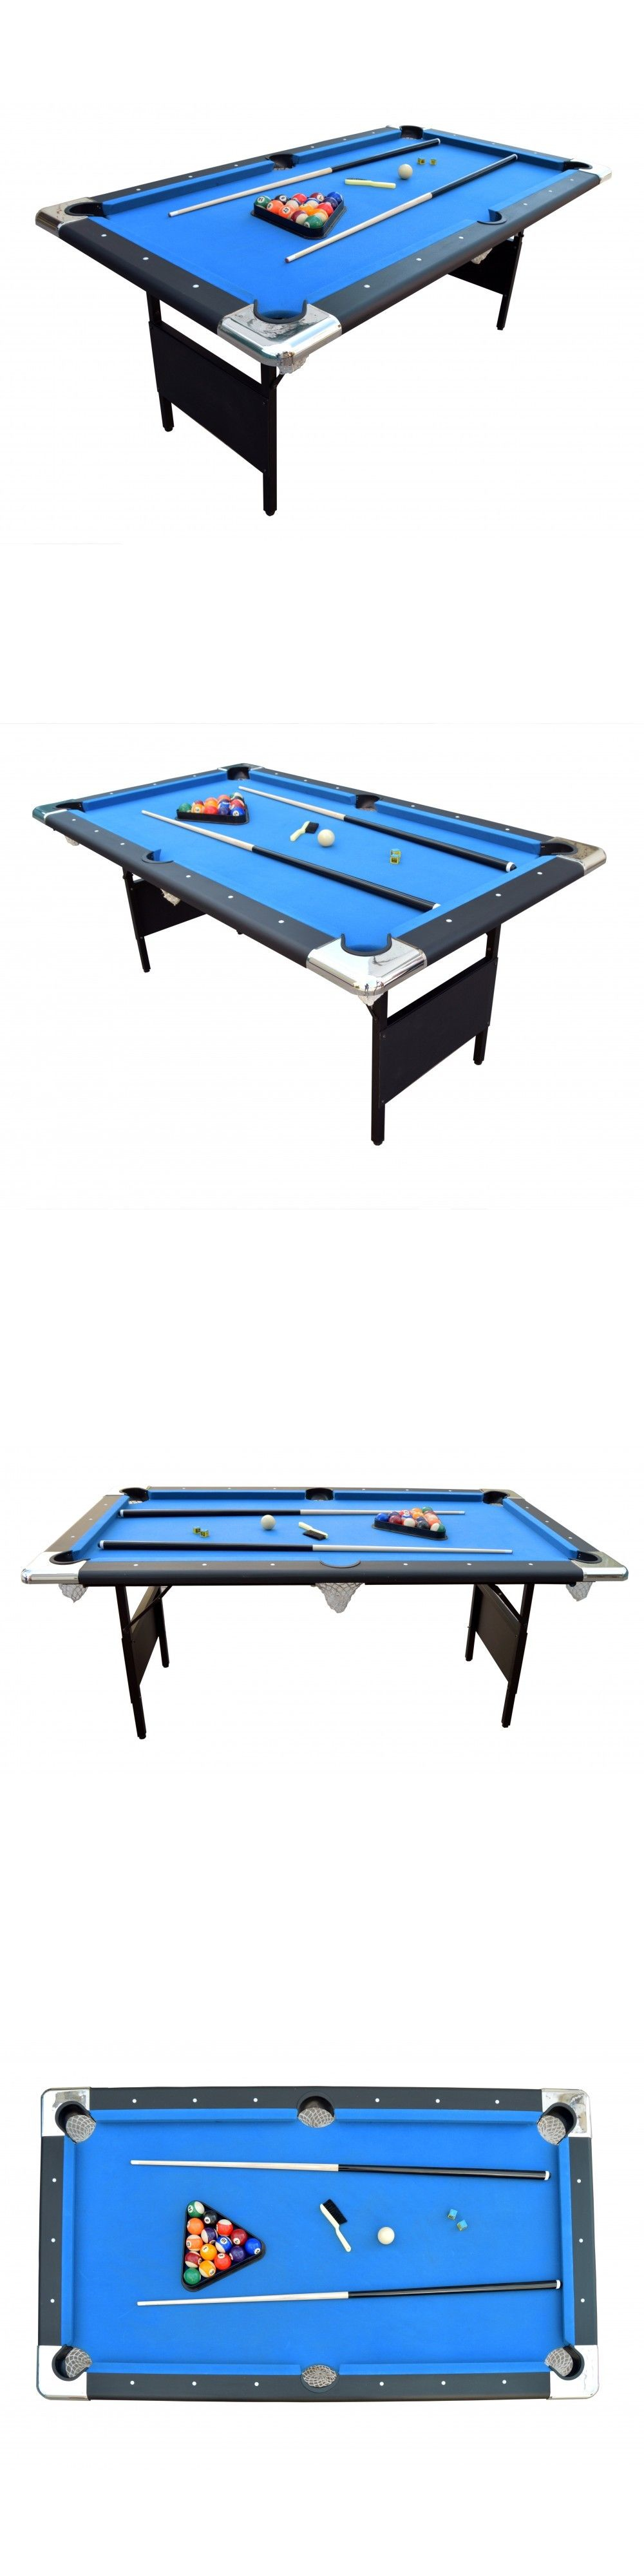 Tables Carmelli Fairmont Portable Pool Table Includes - Carmelli pool table